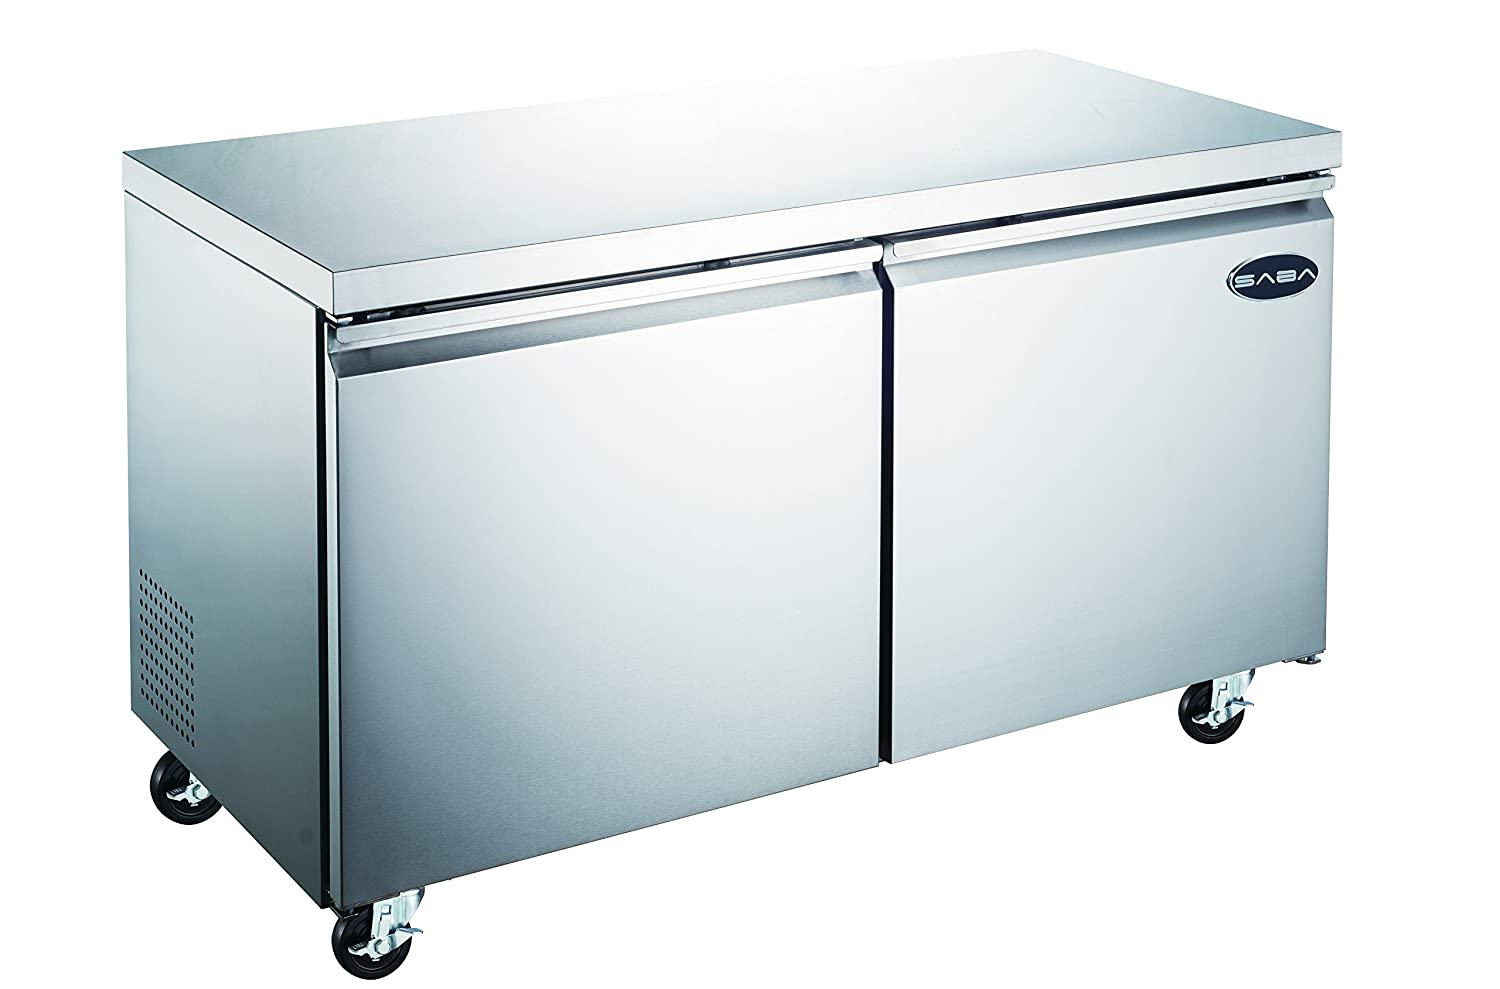 Commercial Under Counter Freezer with 2 Door and 48